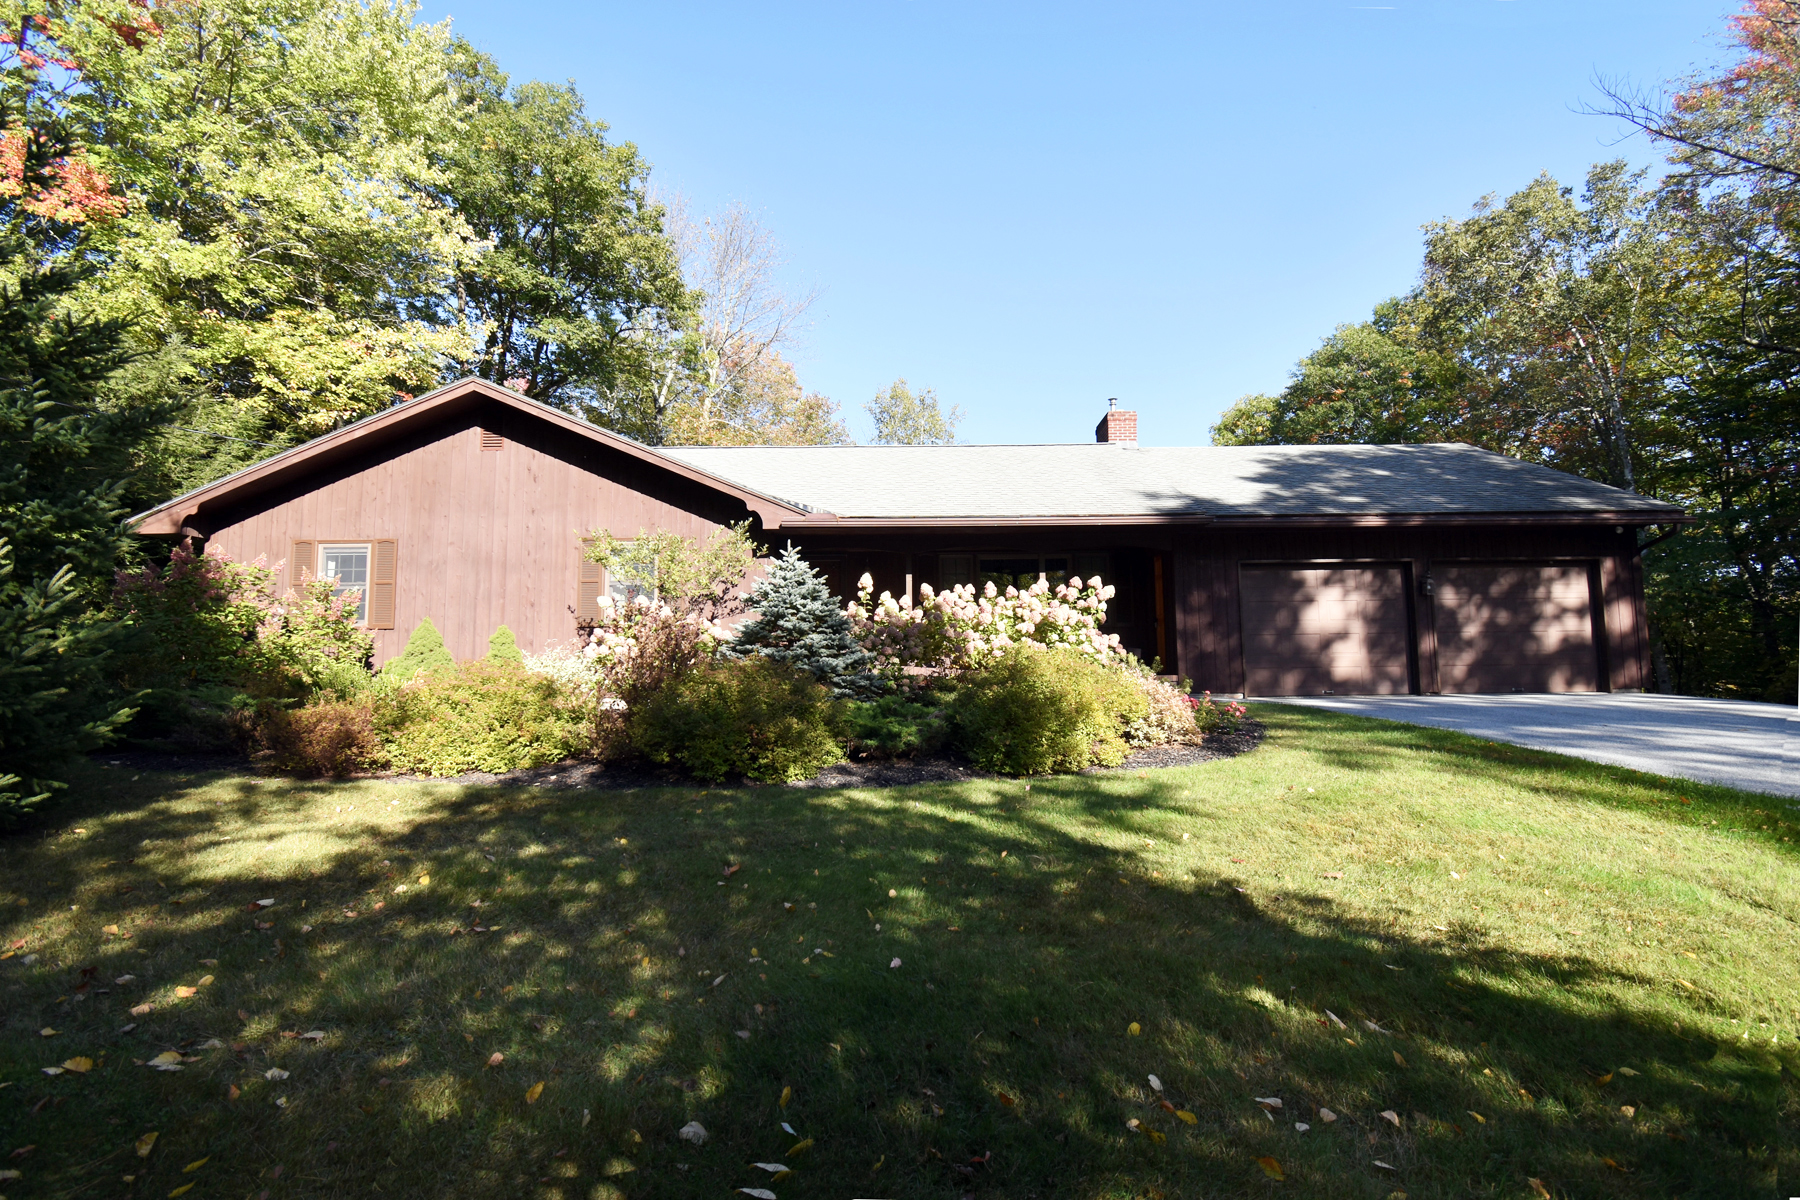 Single Family Homes for Sale at 636 Sherwood Drive, Mendon 636 Sherwood Dr Mendon, Vermont 05701 United States